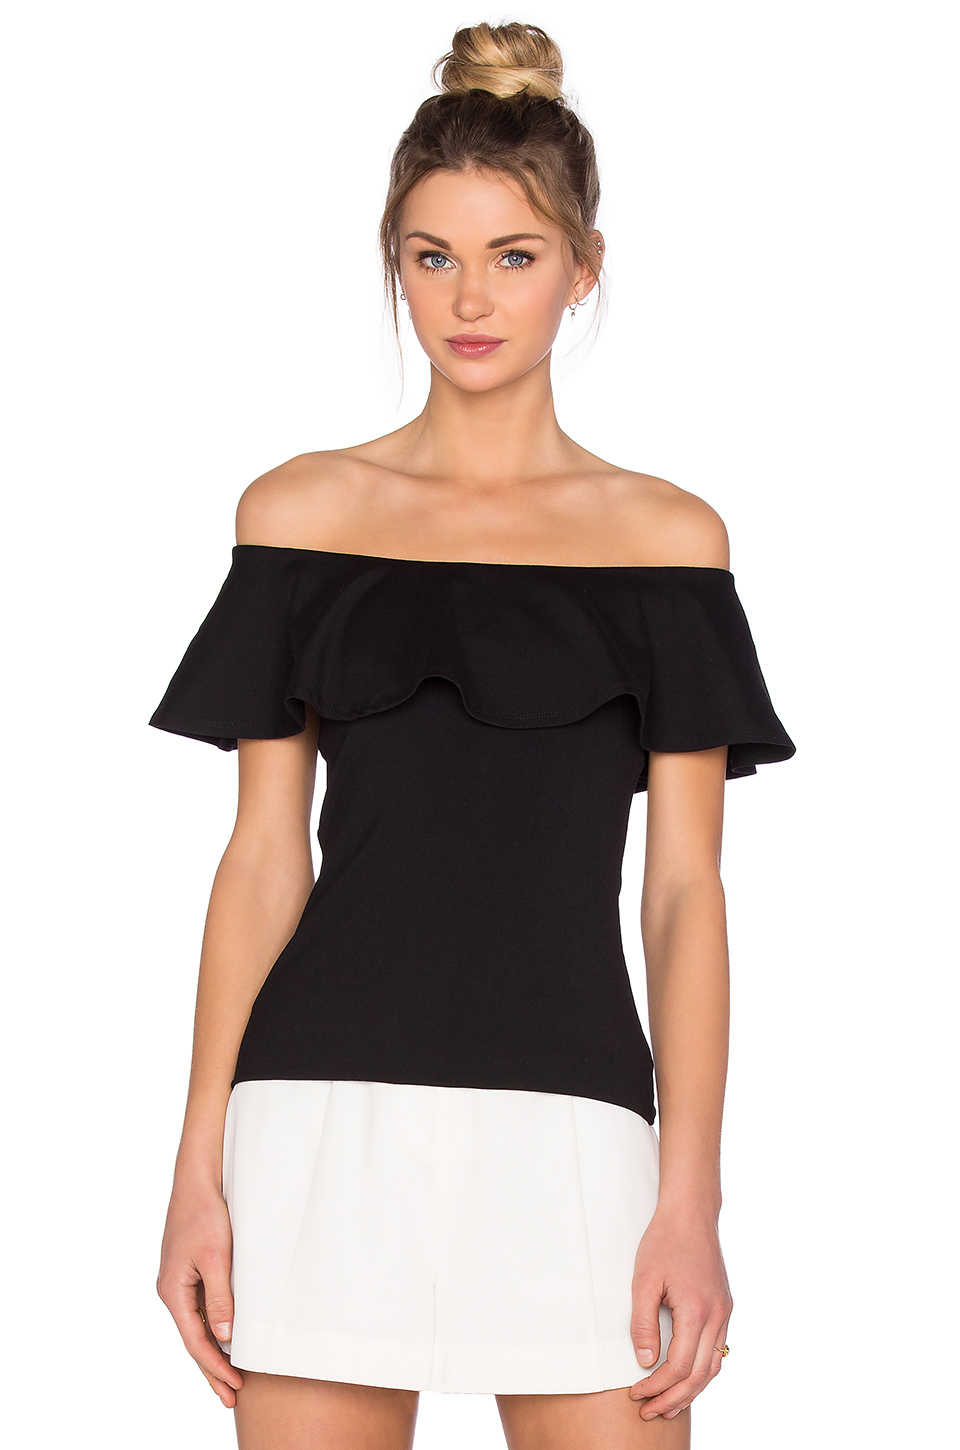 8201f57bf8e38 Lyst - Susana Monaco Ruffle Off The Shoulder Top in Black